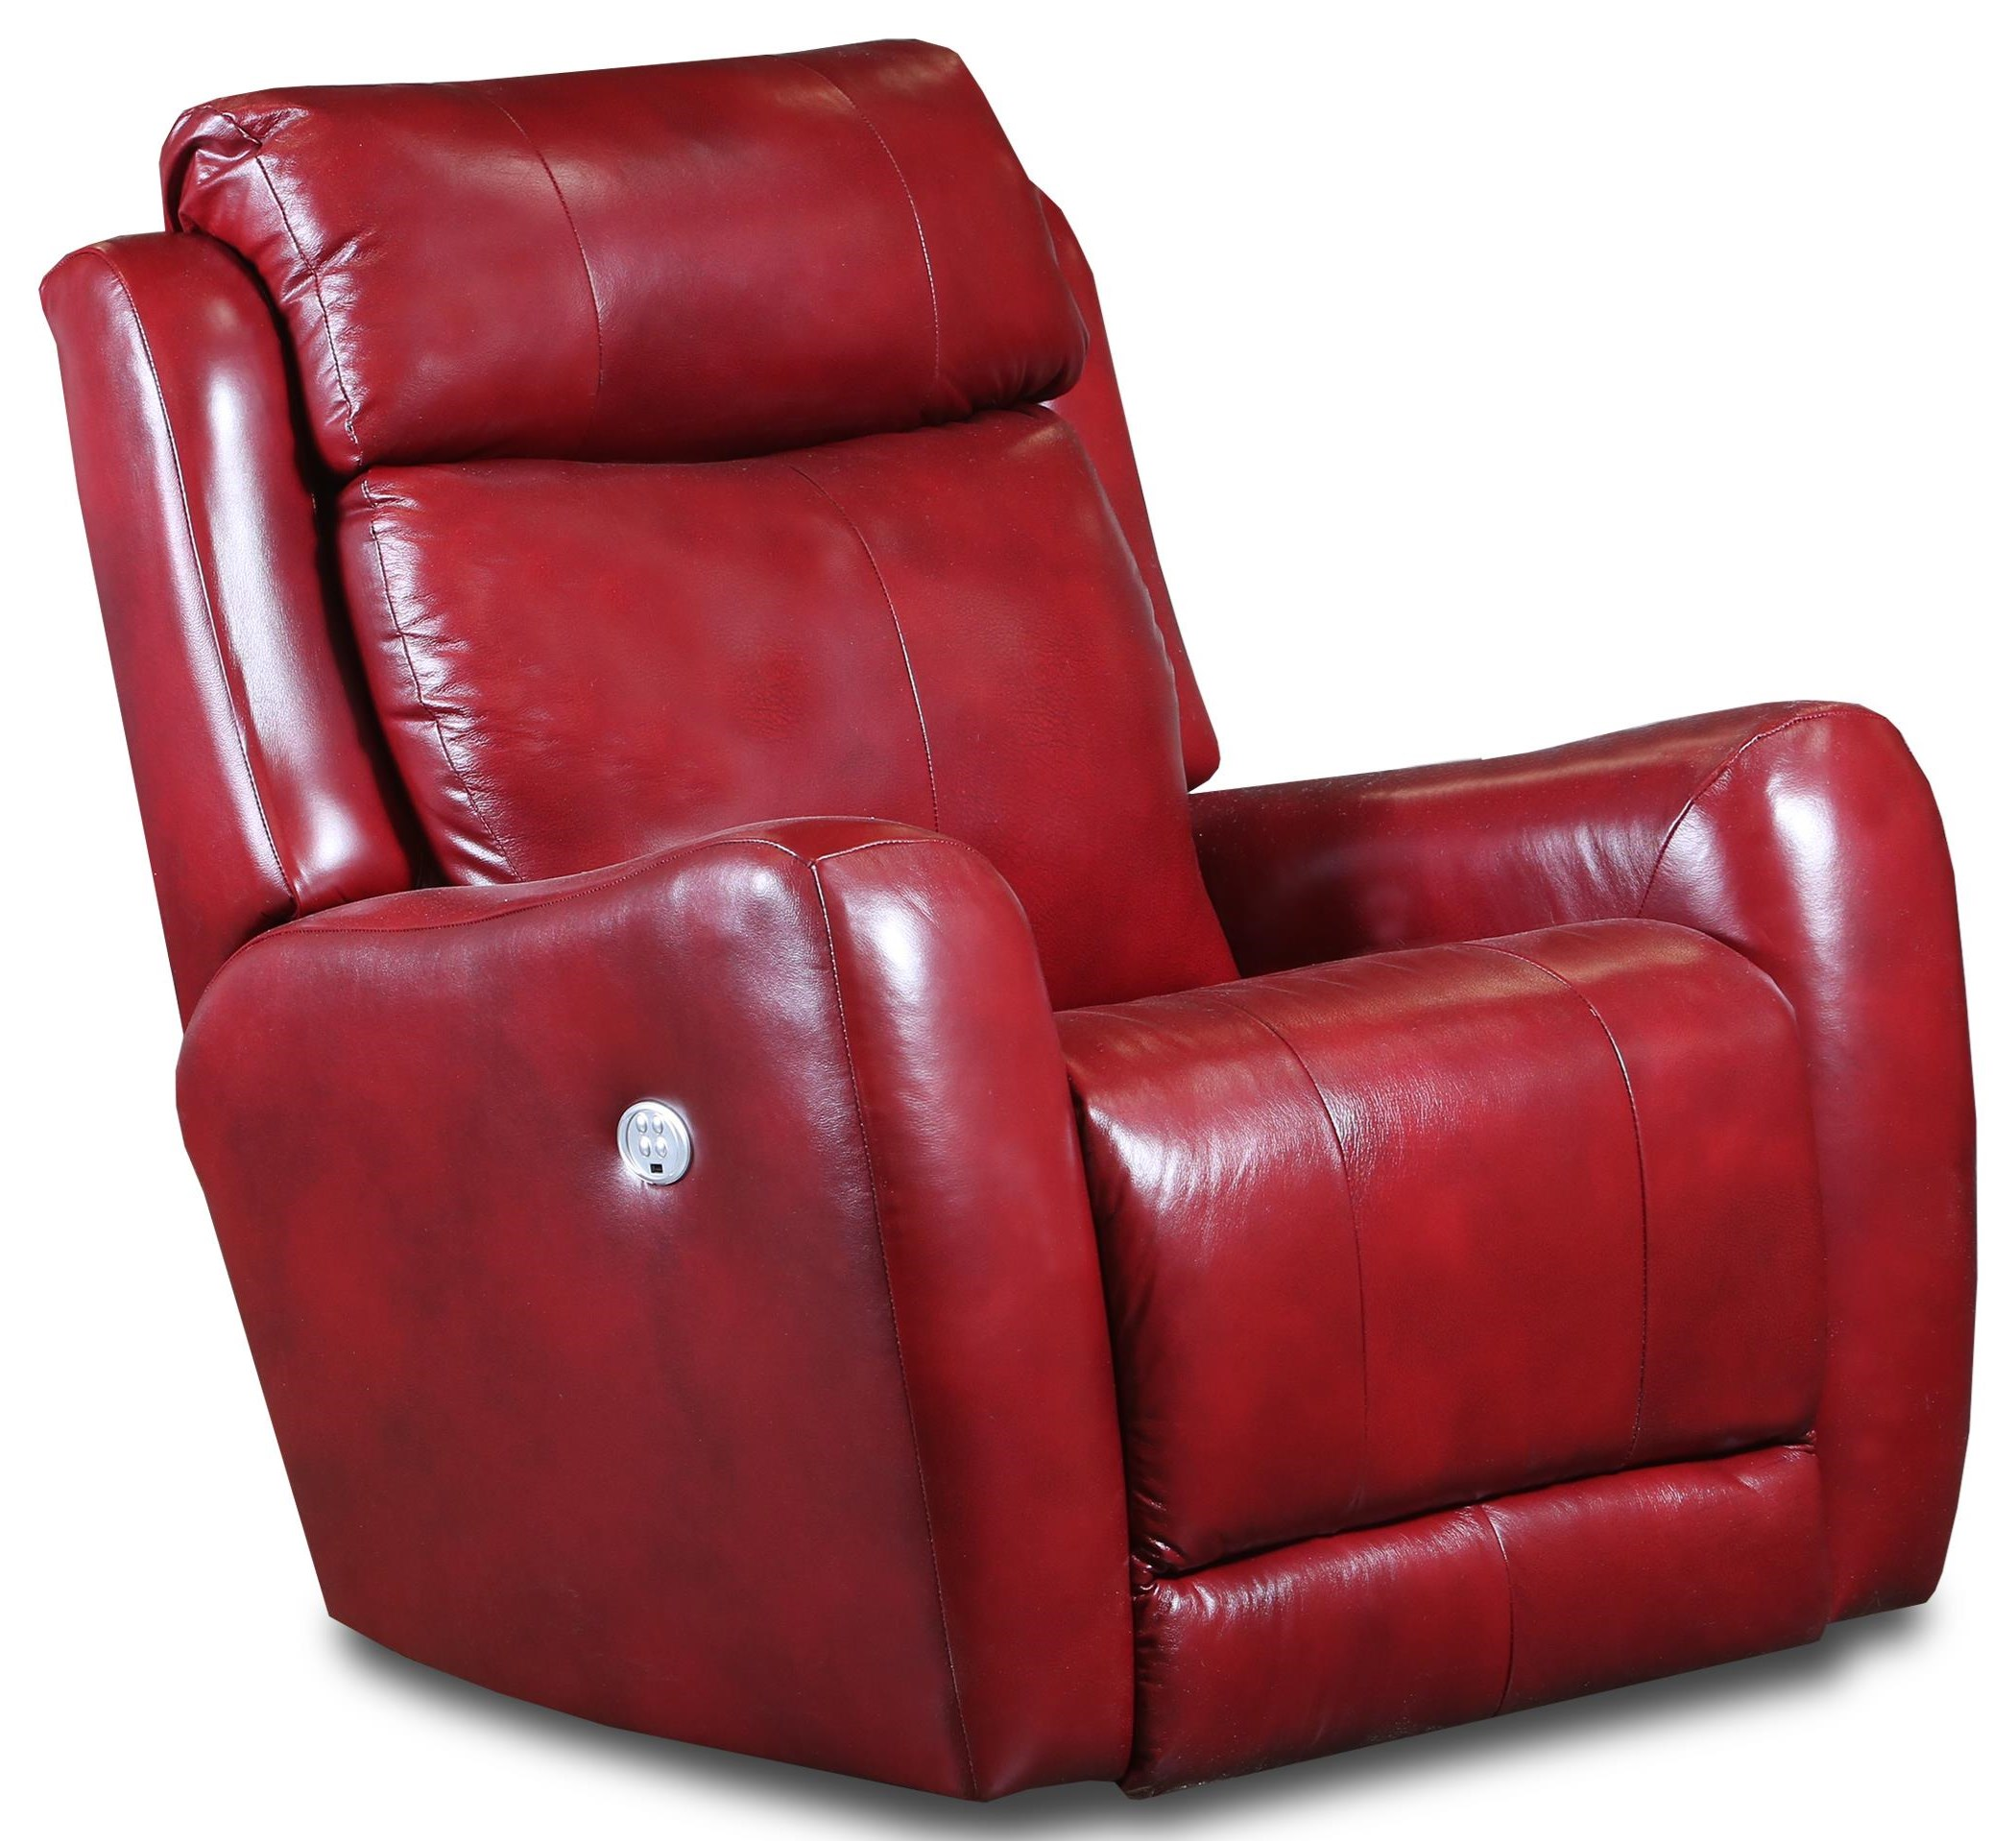 Leather Power Recliner 905-42